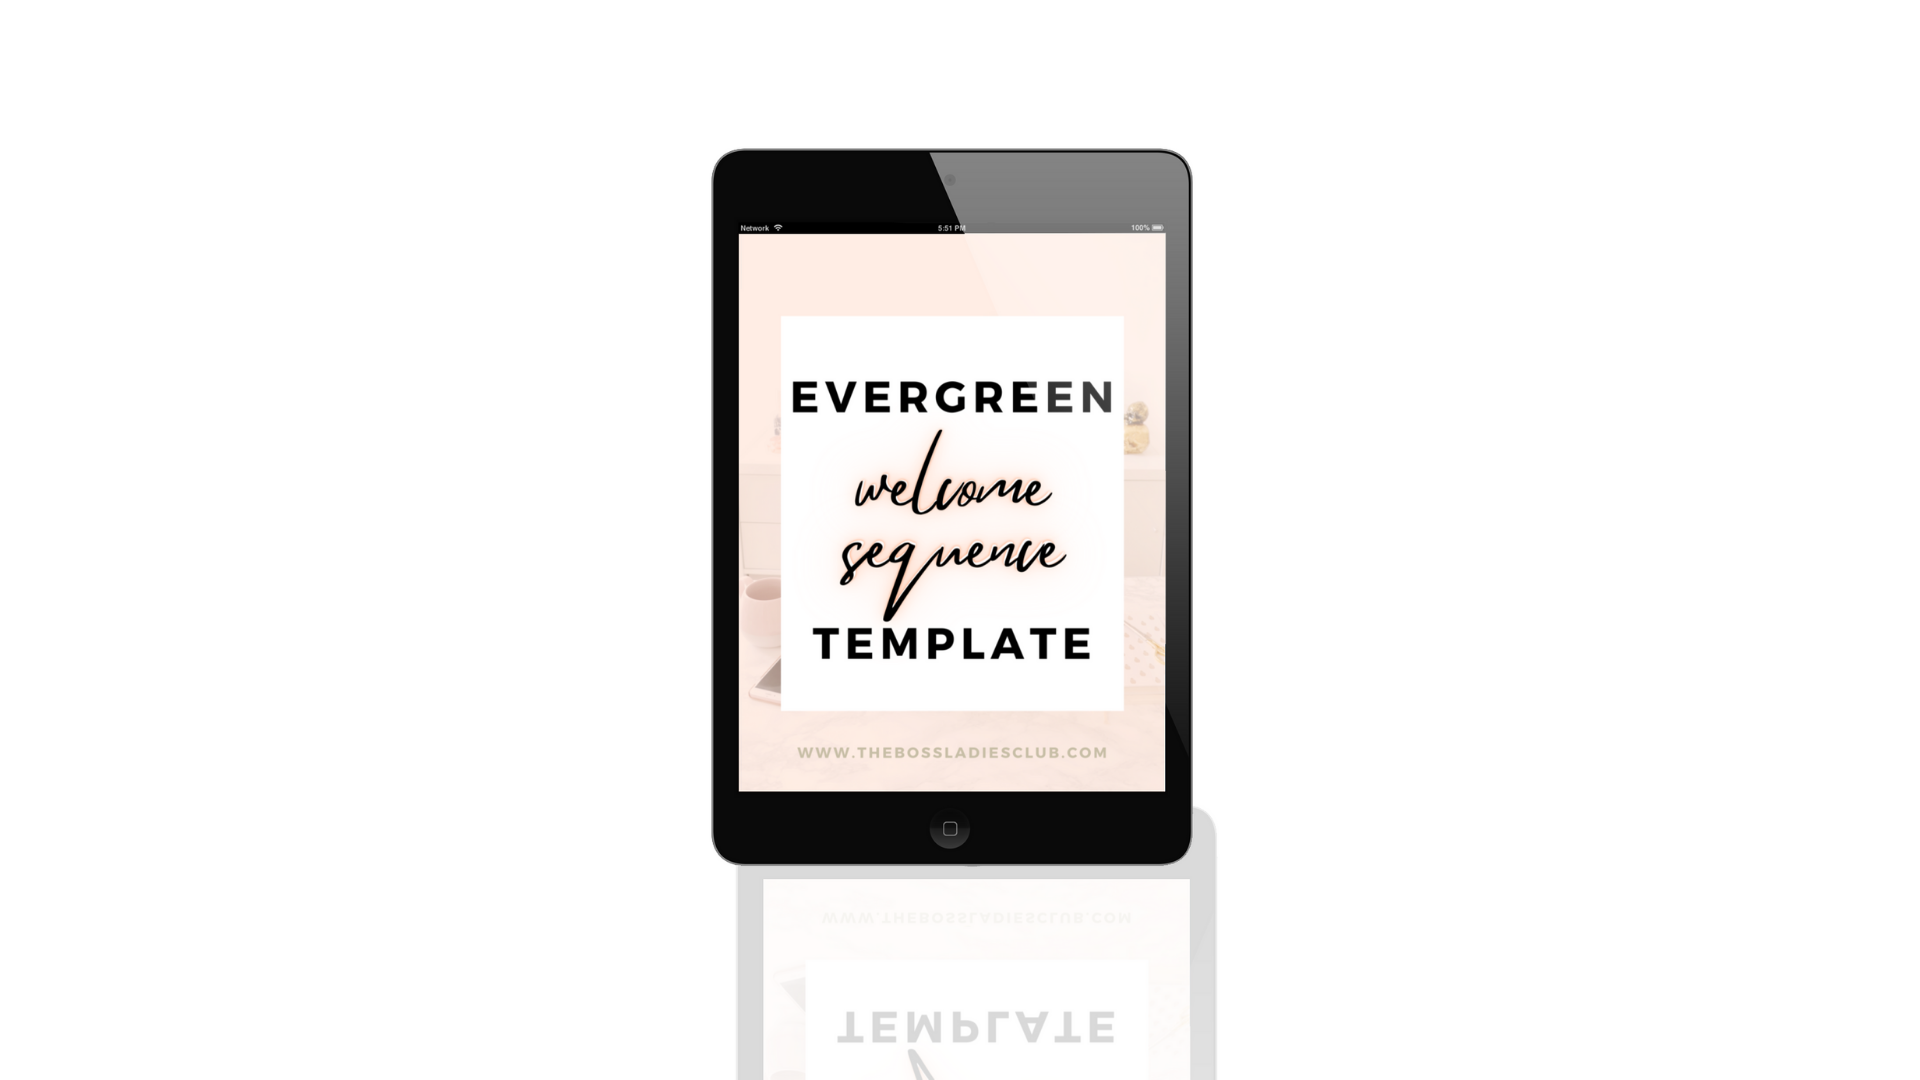 Evergreen welcome sequence template